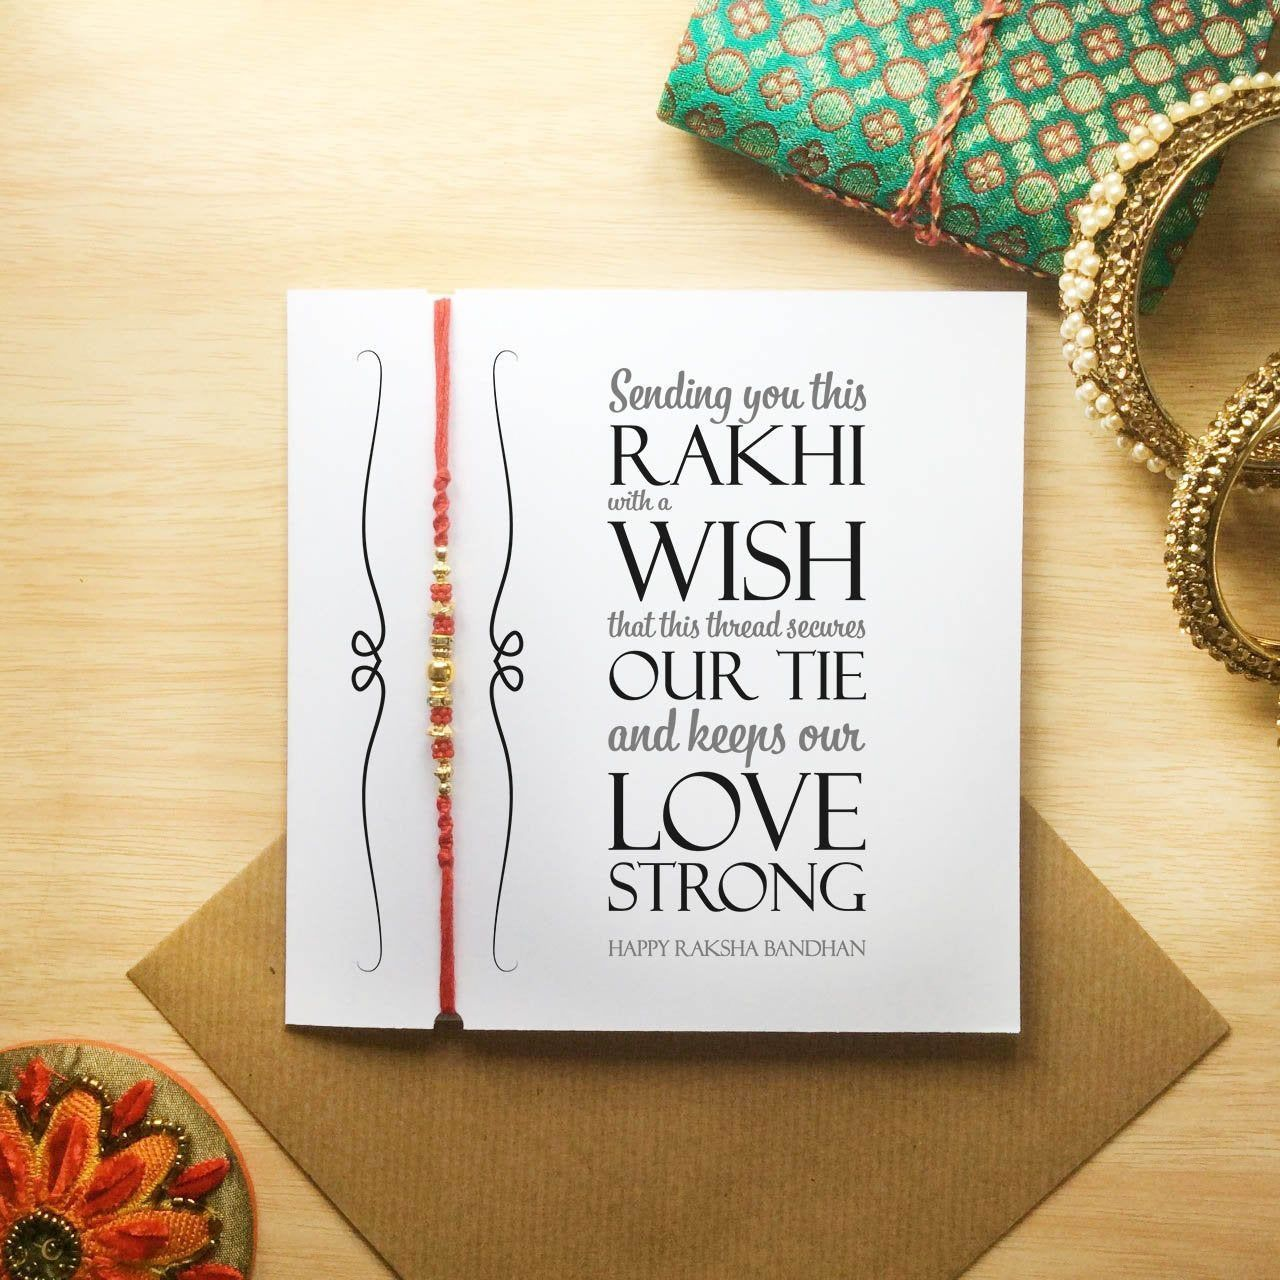 Happy Raksha Bandhan Card with Red and Gold Rakhi - Card for my Brother, Rakhi Greeting Card, Indian Occasion Card, Desi Card, Modern Design #rakshabandhancards Happy Raksha Bandhan Card with Red and Gold Rakhi - Card for my Brother, Rakhi Greeting Card, Indian Occasion Card, Desi Card, Modern Design #rakshabandhancards Happy Raksha Bandhan Card with Red and Gold Rakhi - Card for my Brother, Rakhi Greeting Card, Indian Occasion Card, Desi Card, Modern Design #rakshabandhancards Happy Raksha Band #rakshabandhancards